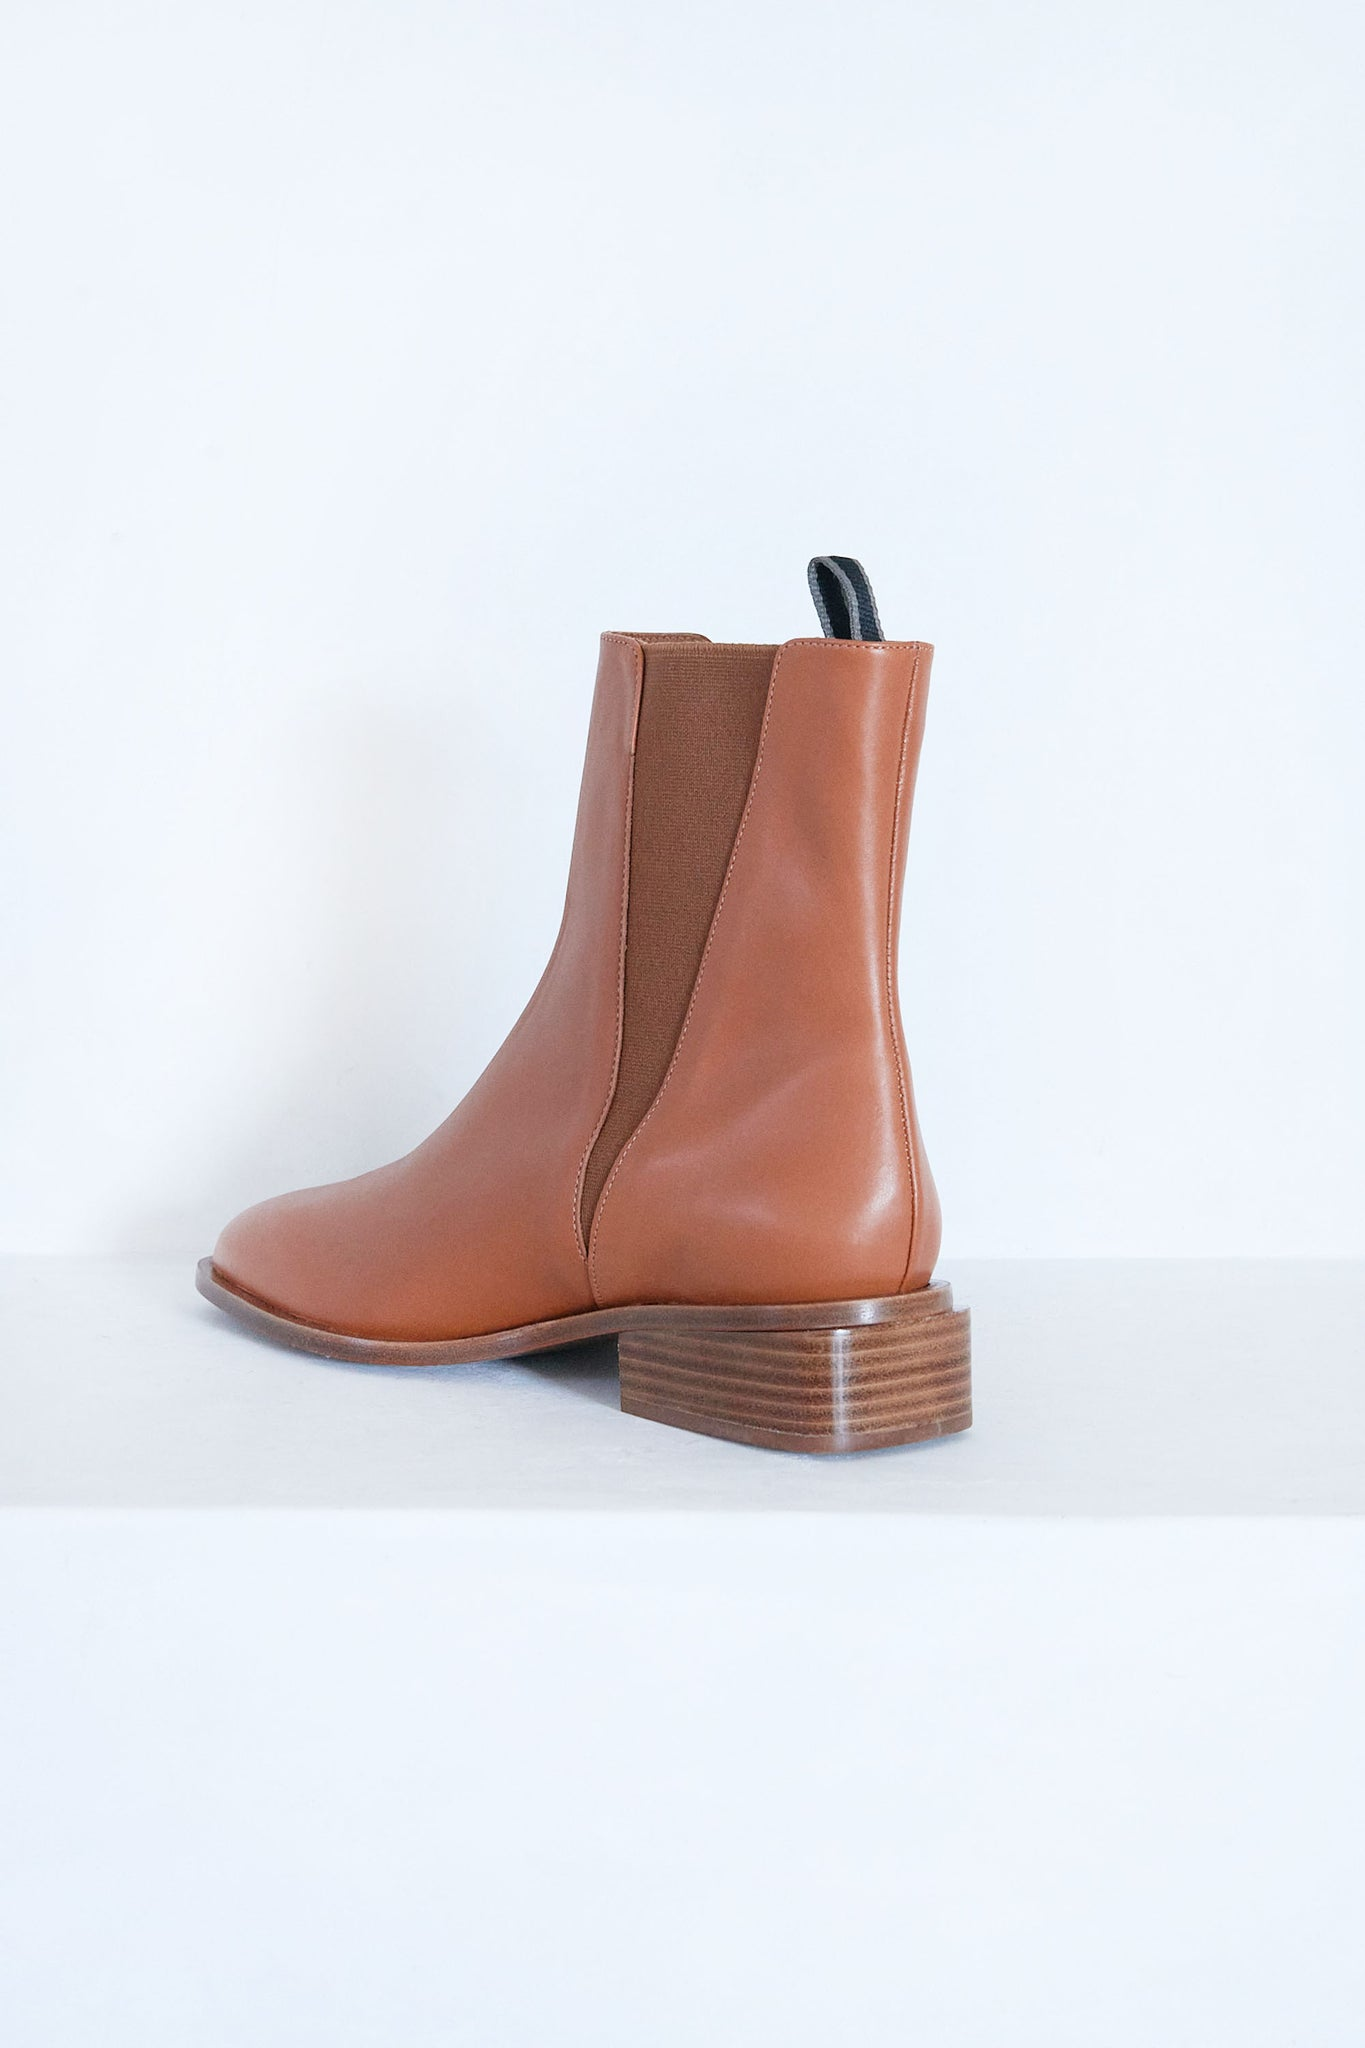 Robert Clergerie - xab boot, camel